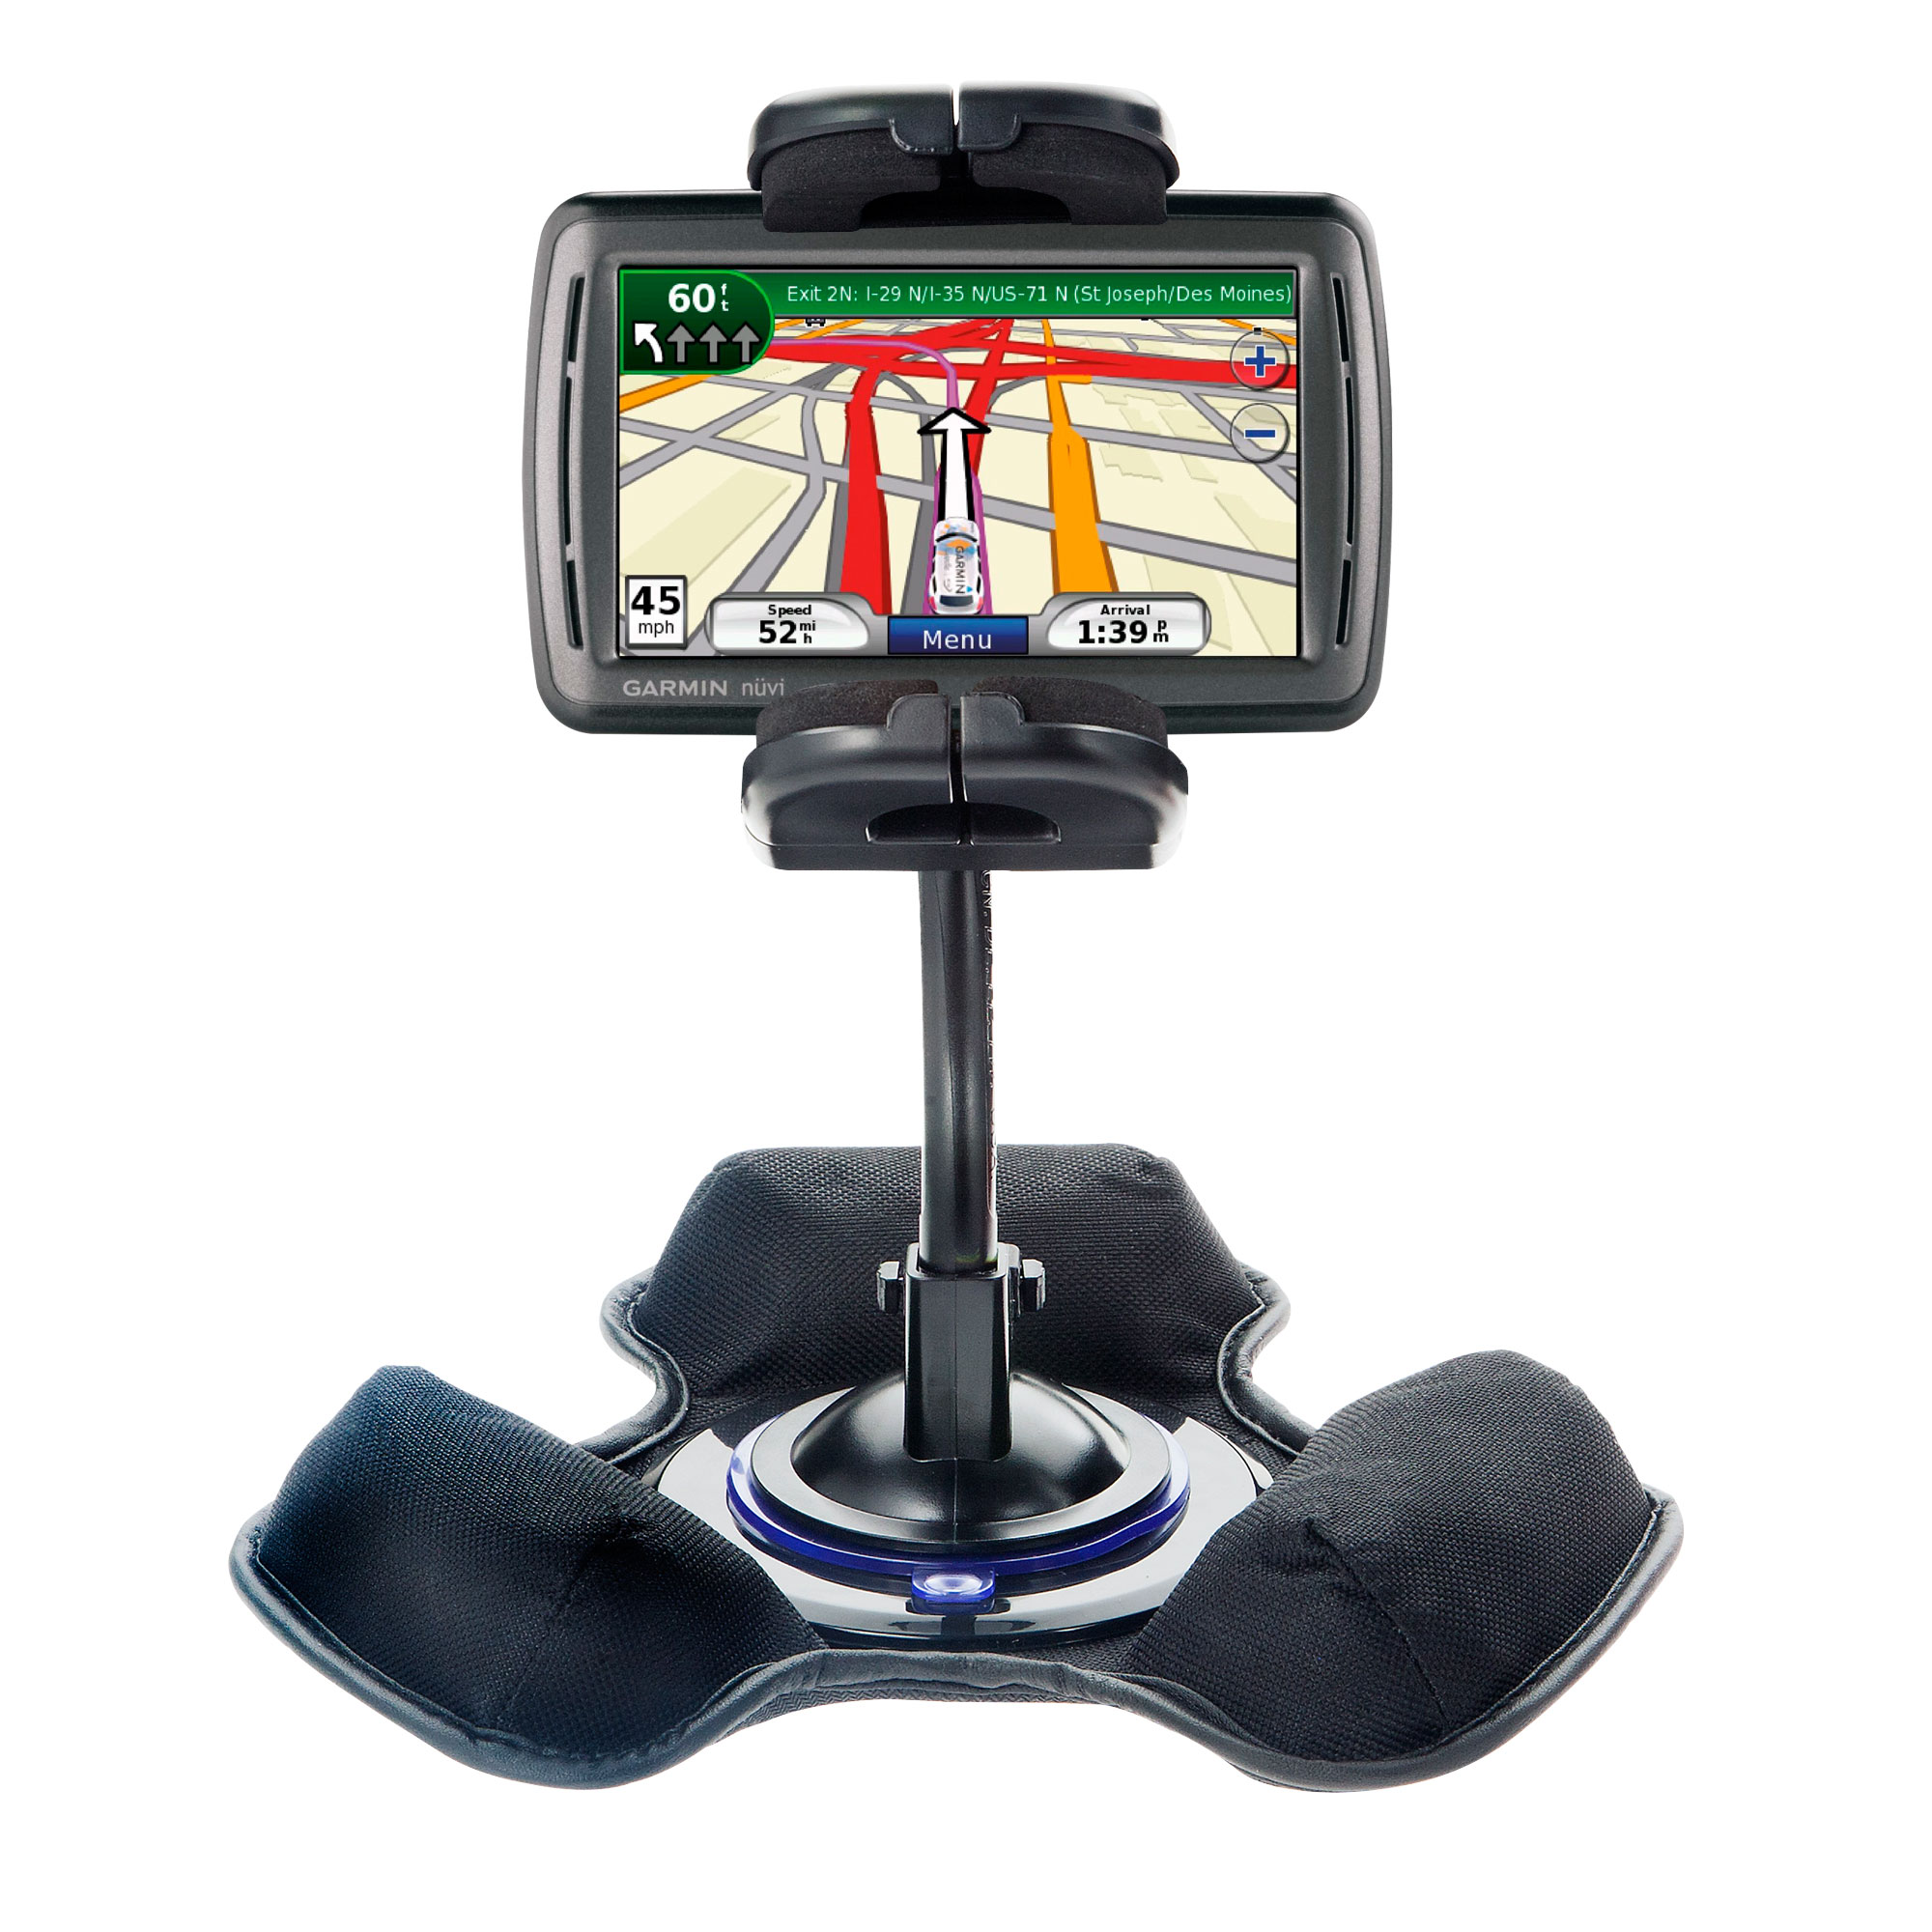 Dash and Windshield Holder compatible with the Garmin Nuvi 850